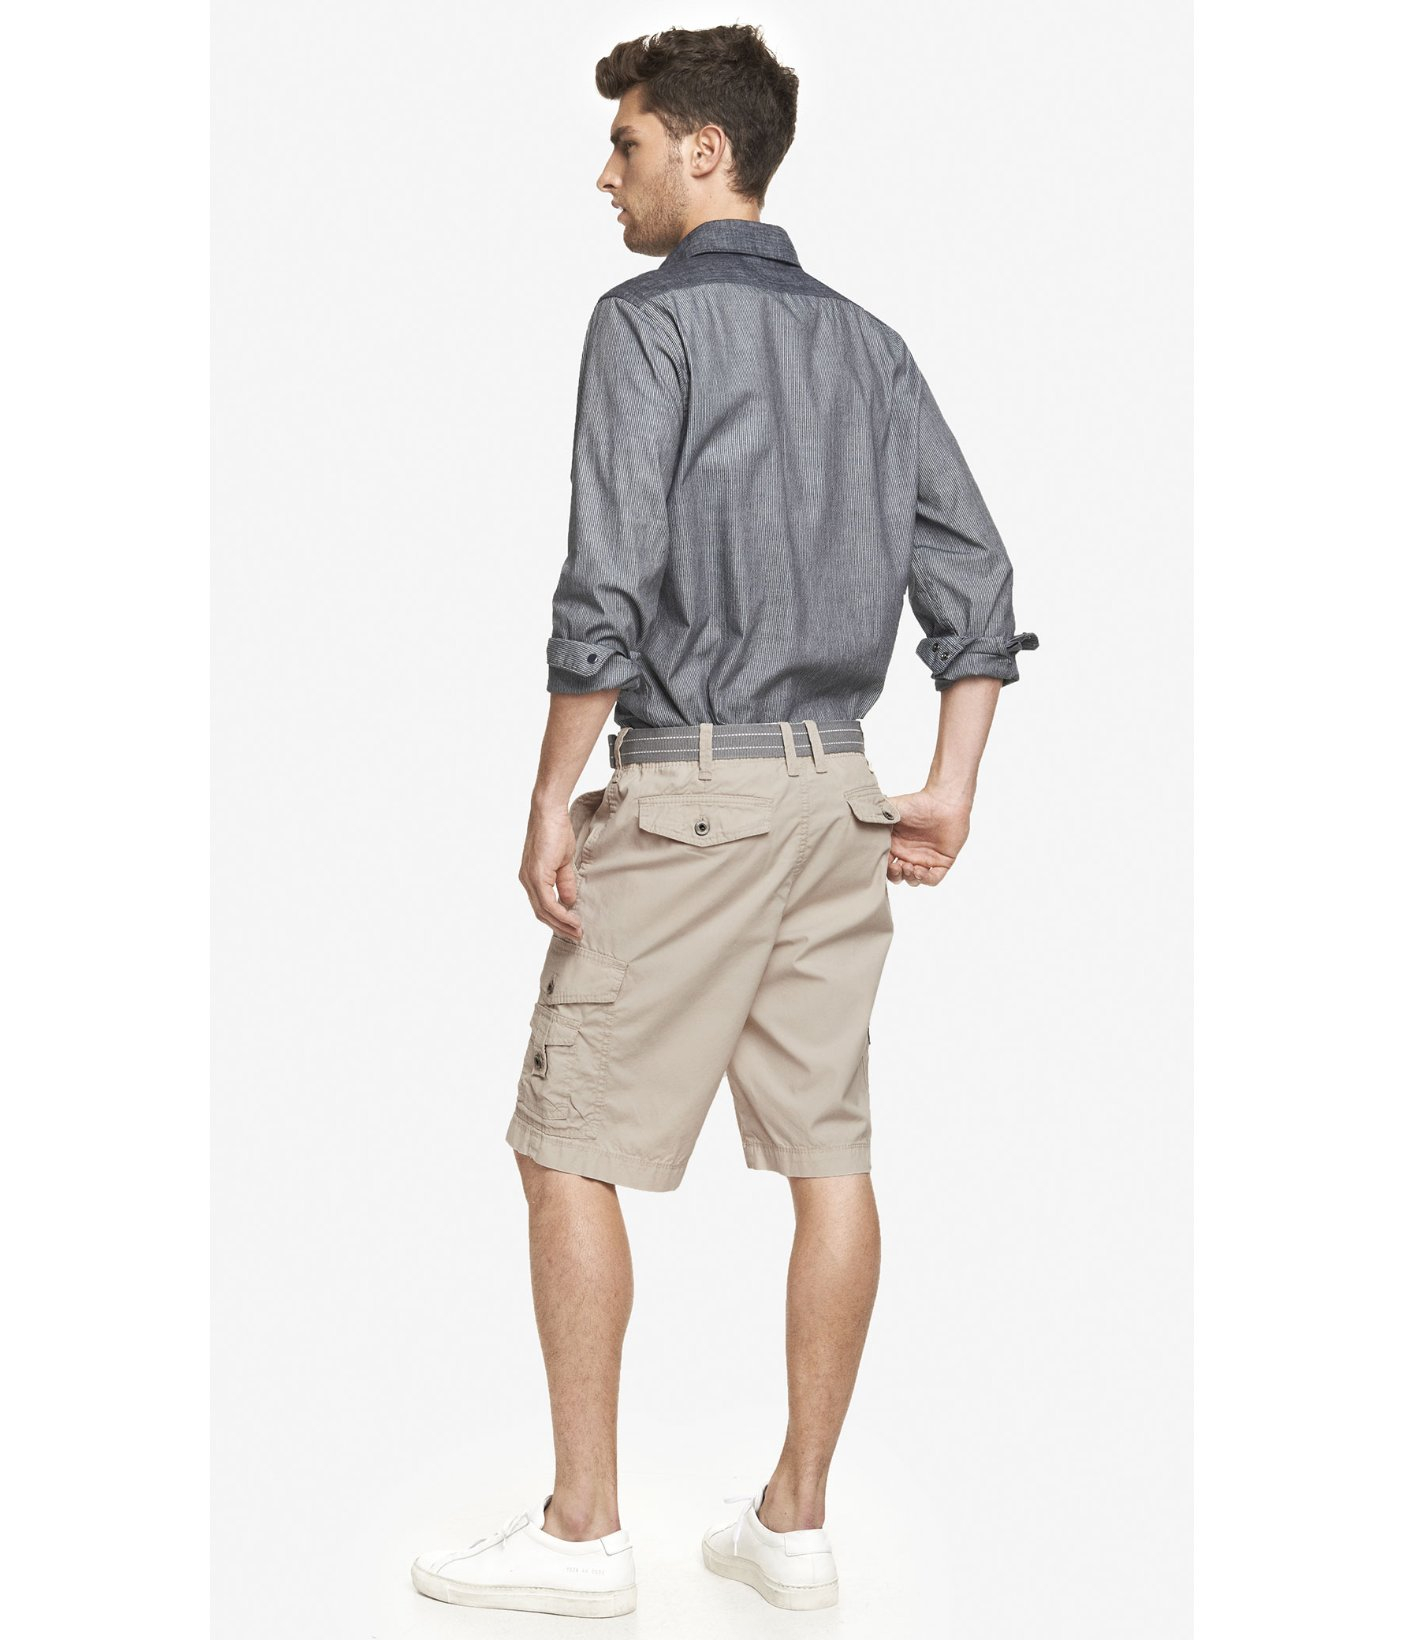 8a9543ec21 Express 10 Inch Belted Cargo Shorts in Natural for Men - Lyst